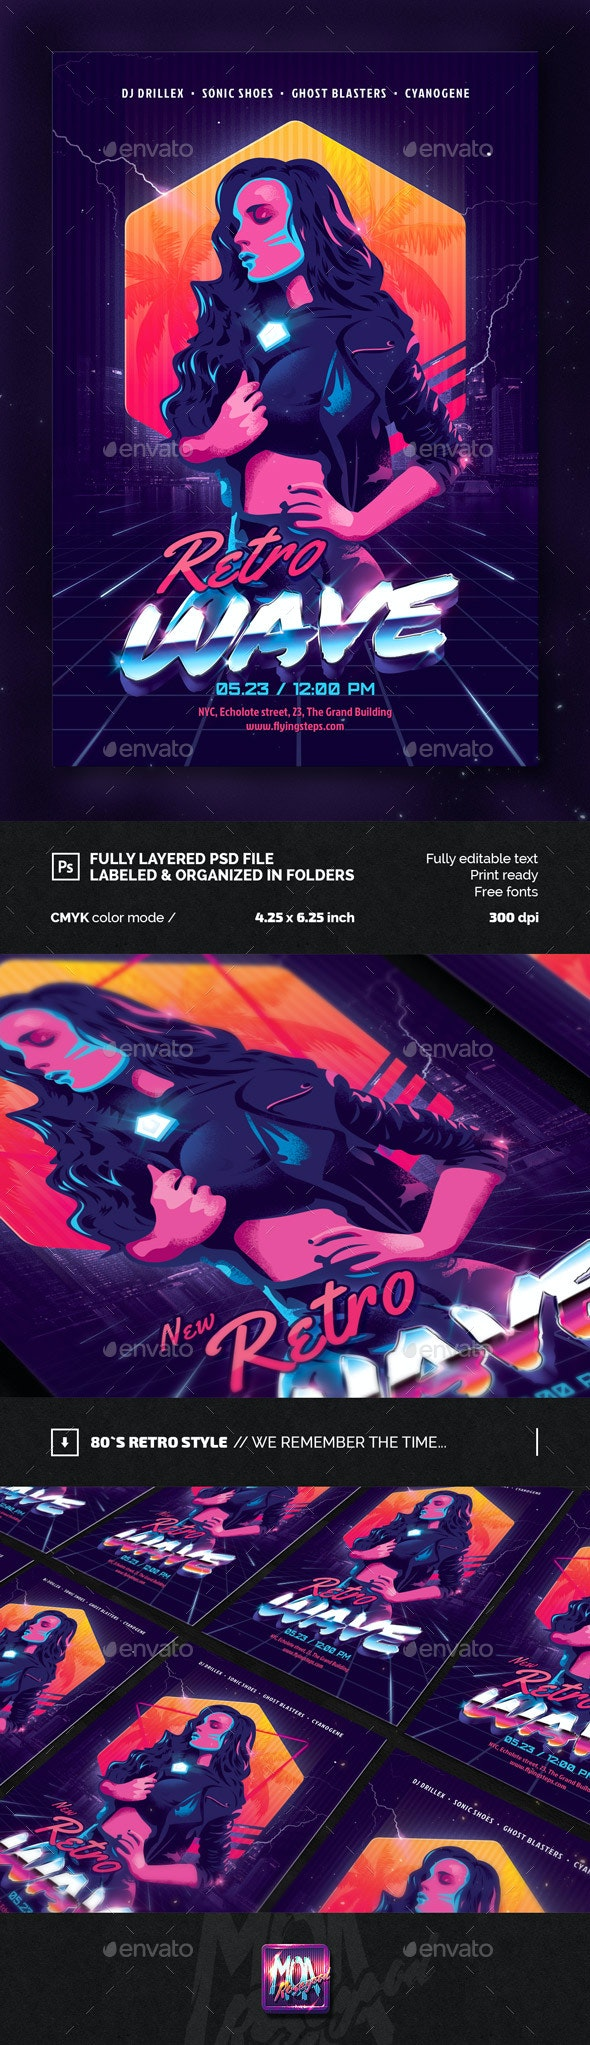 New Retro Wave Party Flyer Template - Clubs & Parties Events